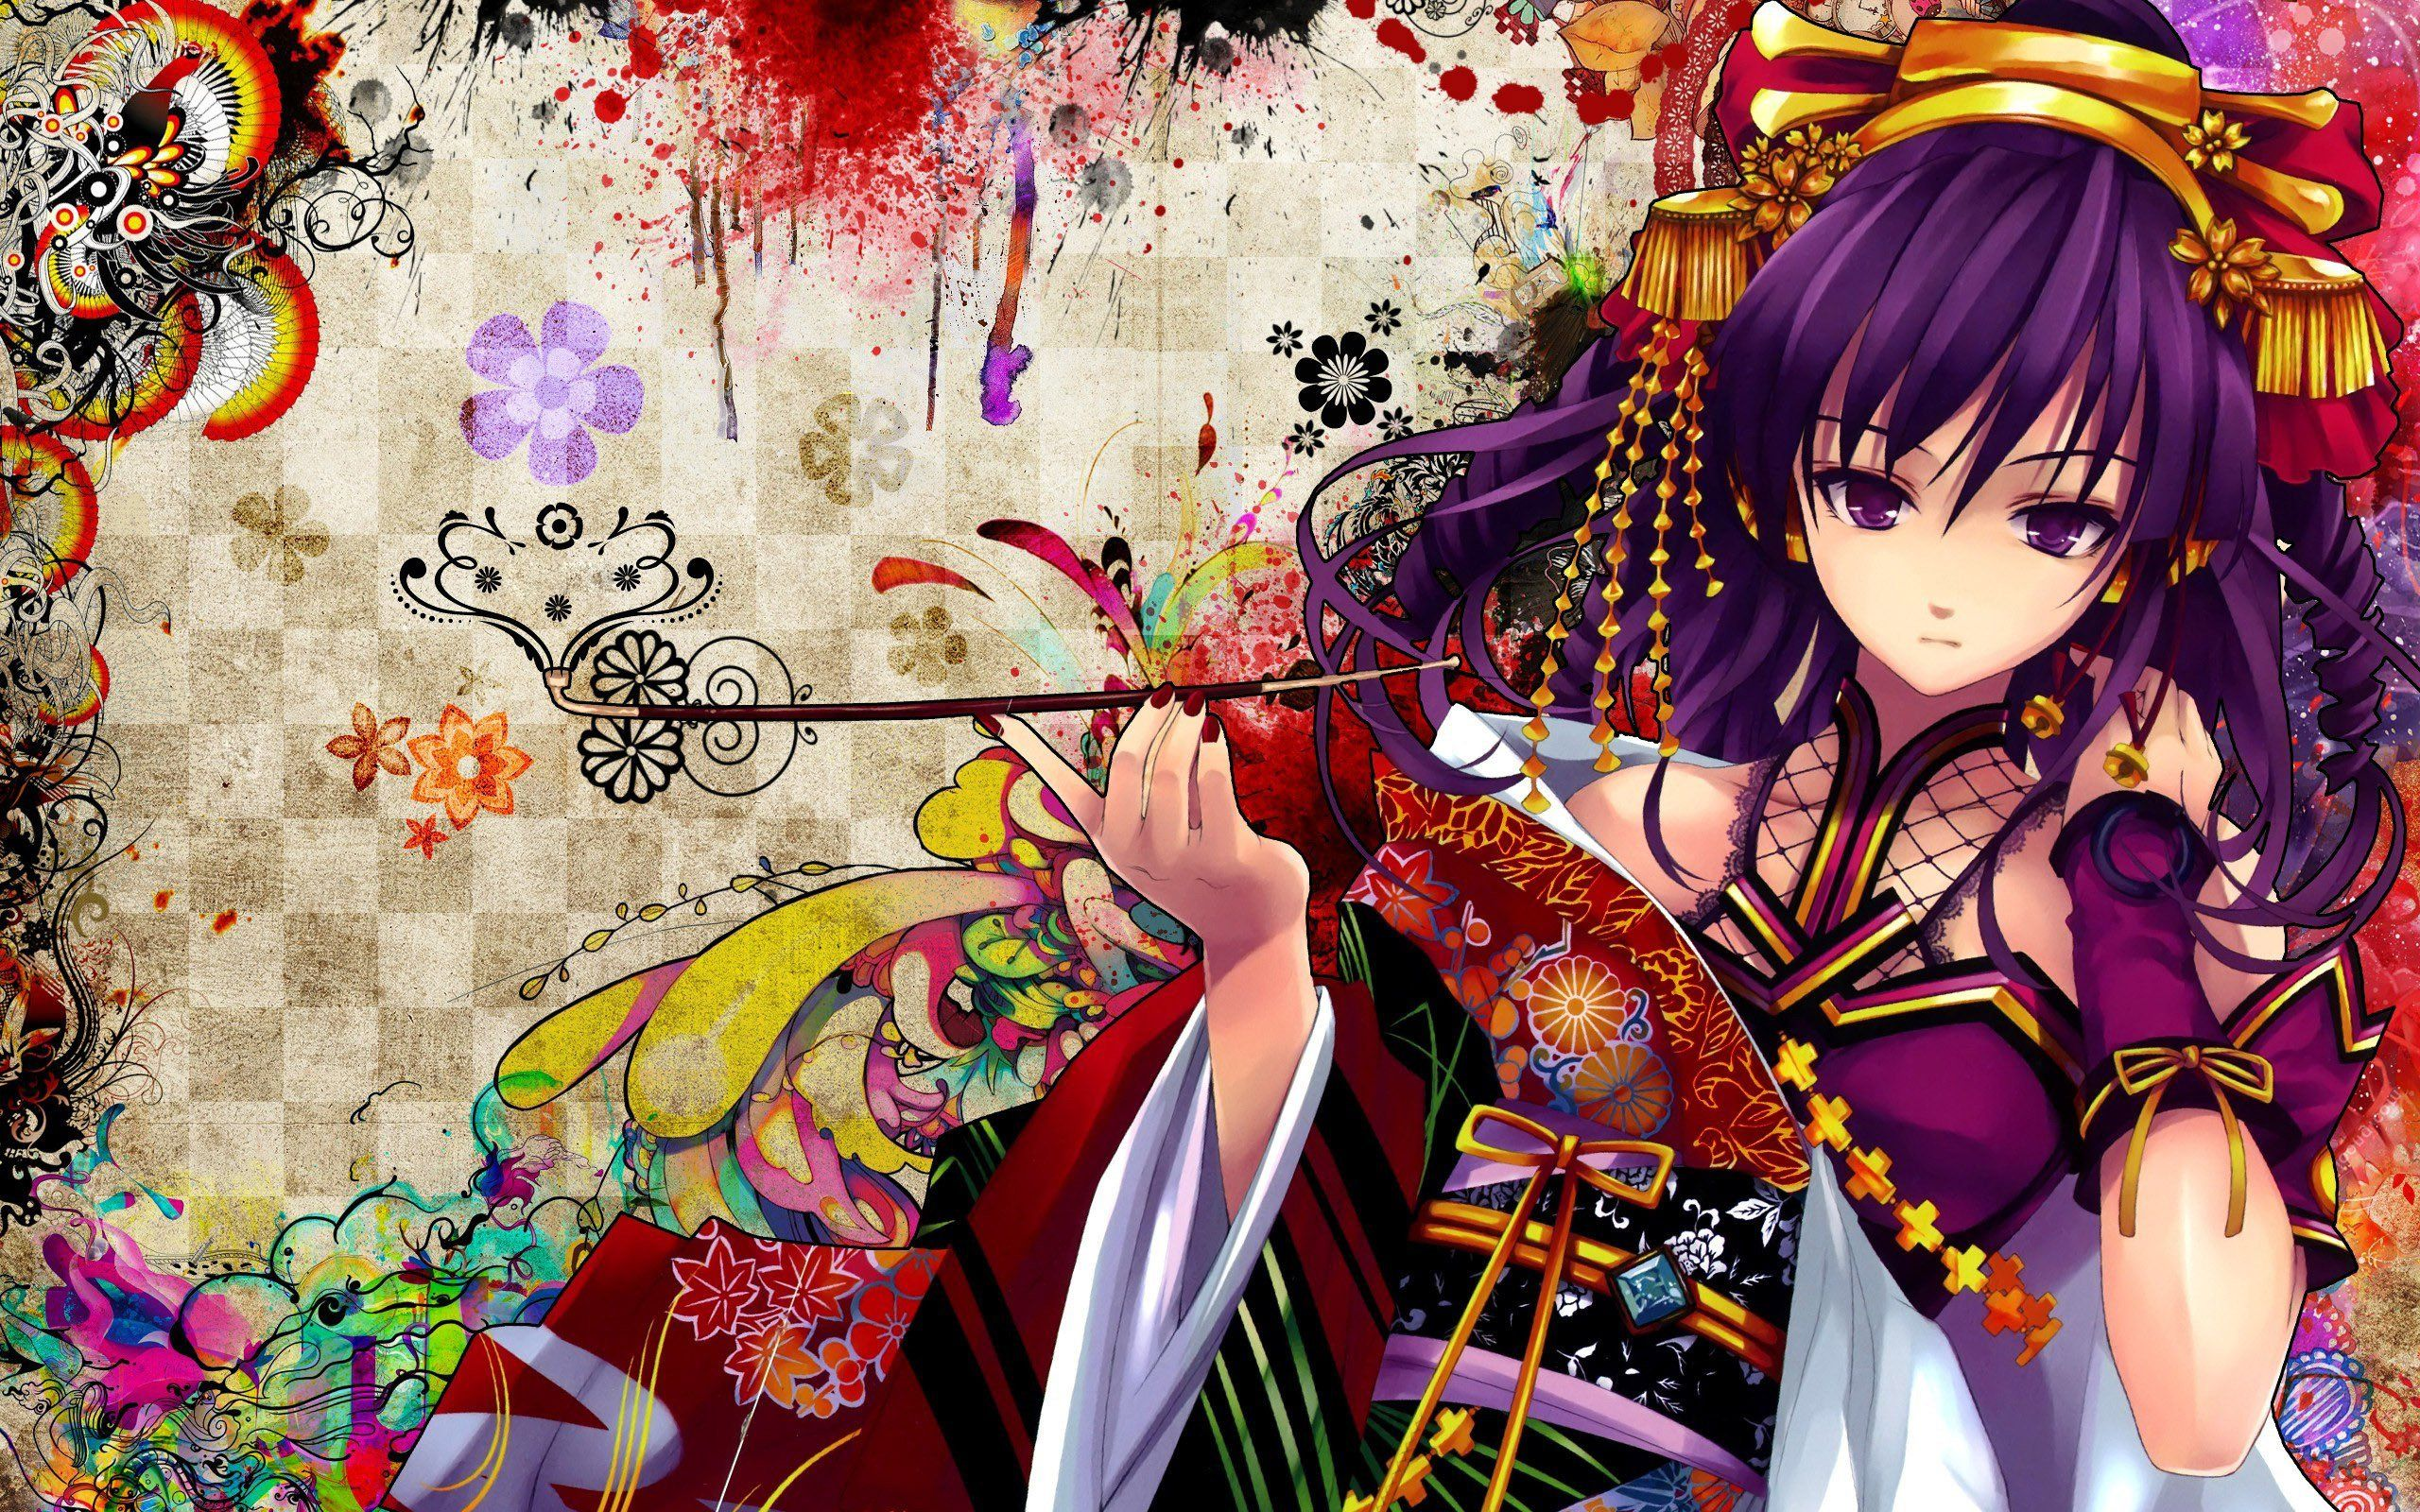 Anime Geisha Wallpapers Top Free Anime Geisha Backgrounds